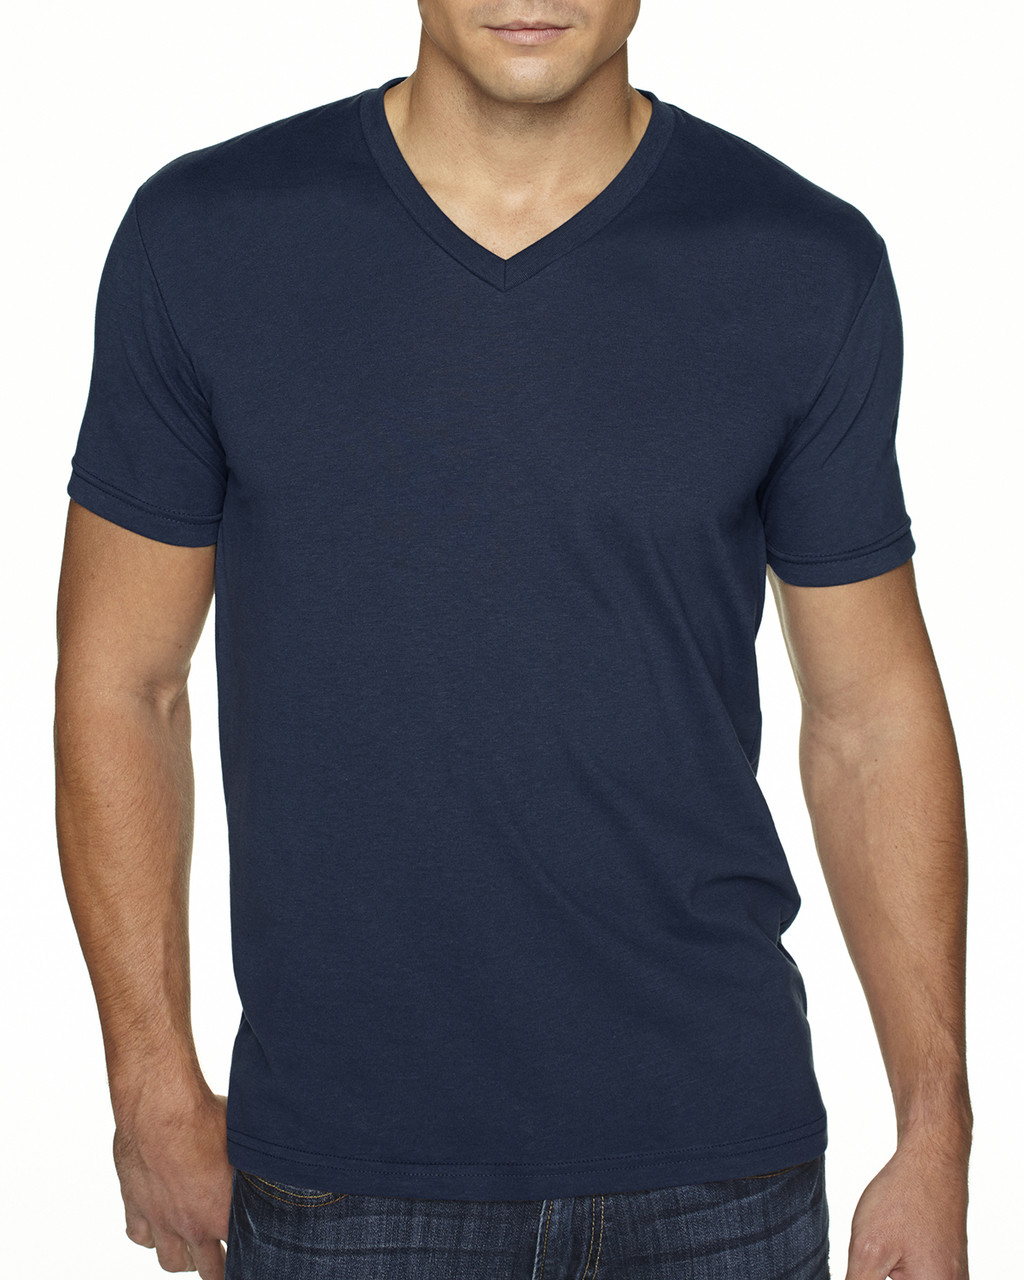 Midnight Navy - 6440 Next Level Men's Premium Fitted Sueded V-Neck Tee | Blankclothing.ca